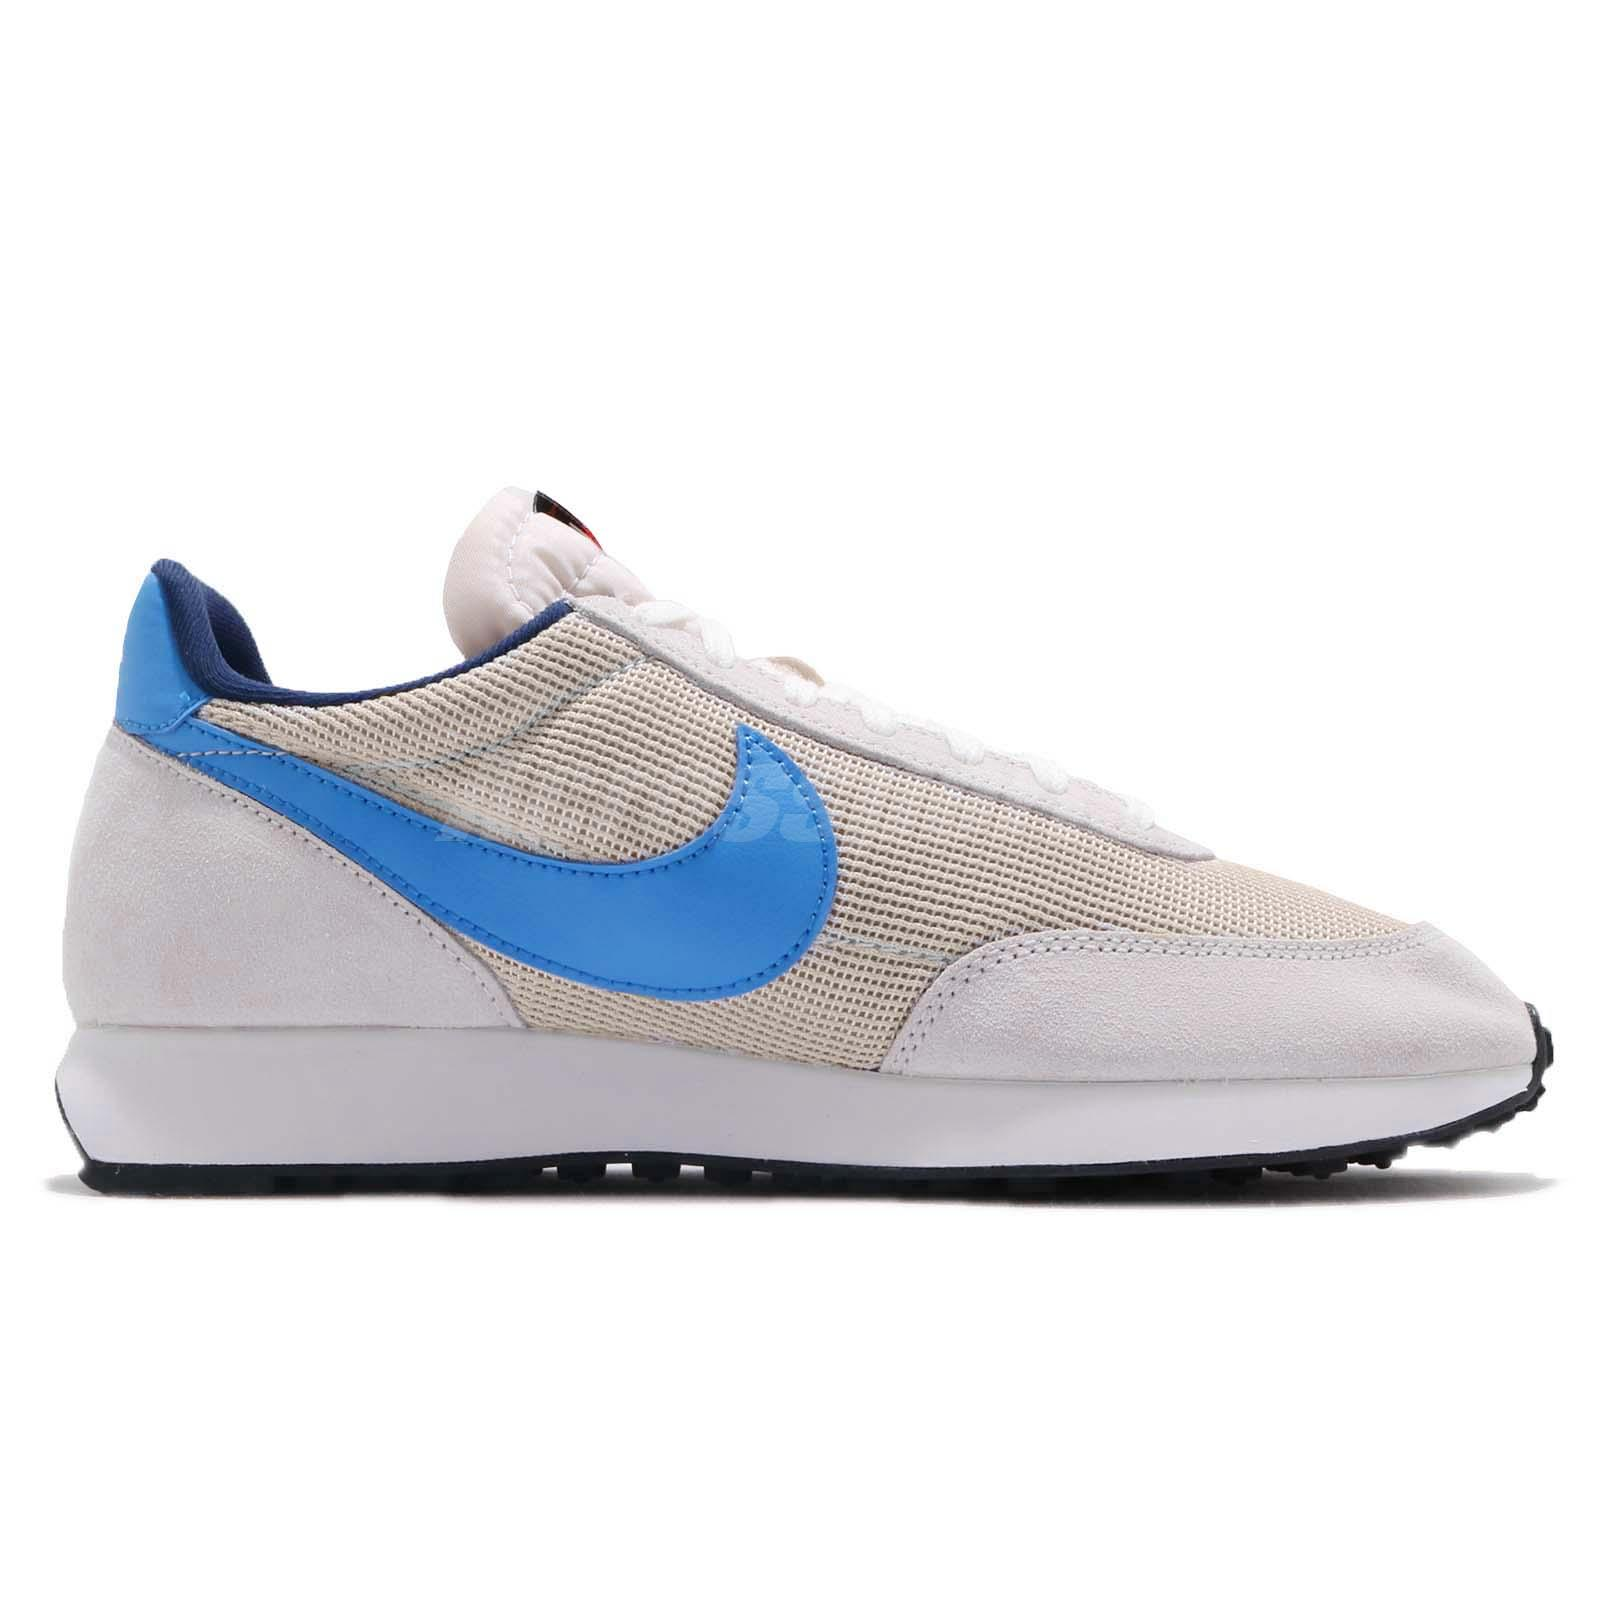 Nike Air Tailwind 79 OG Vast Grey Photo Blue Mens Retro Running ... 6da2c0b25